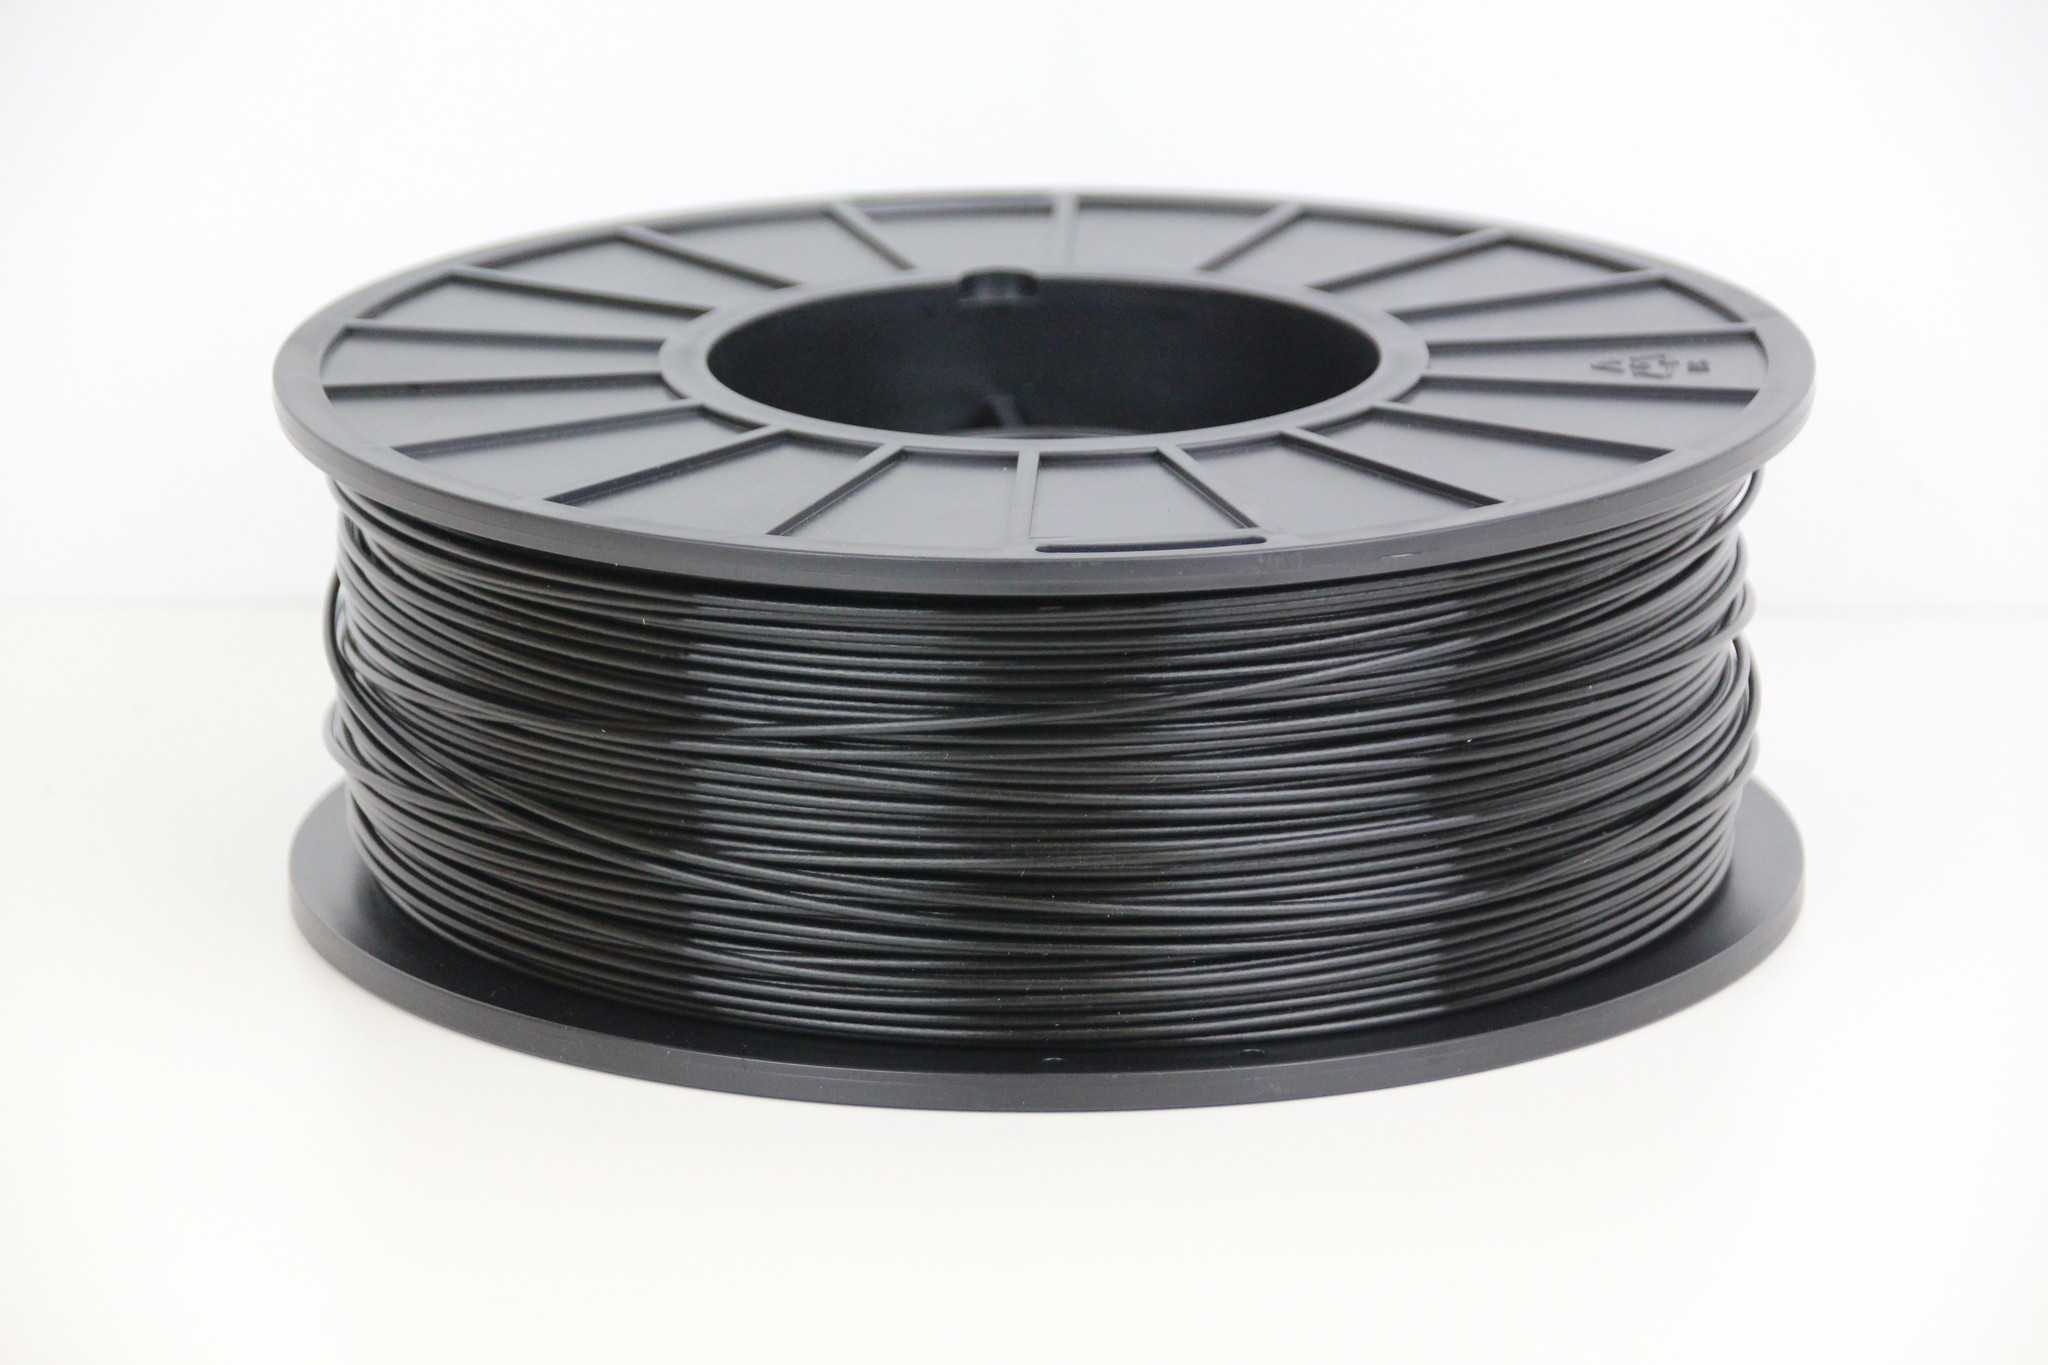 Premium Quality Black ABS 3D Filament compatible with the Universal PFABSBK